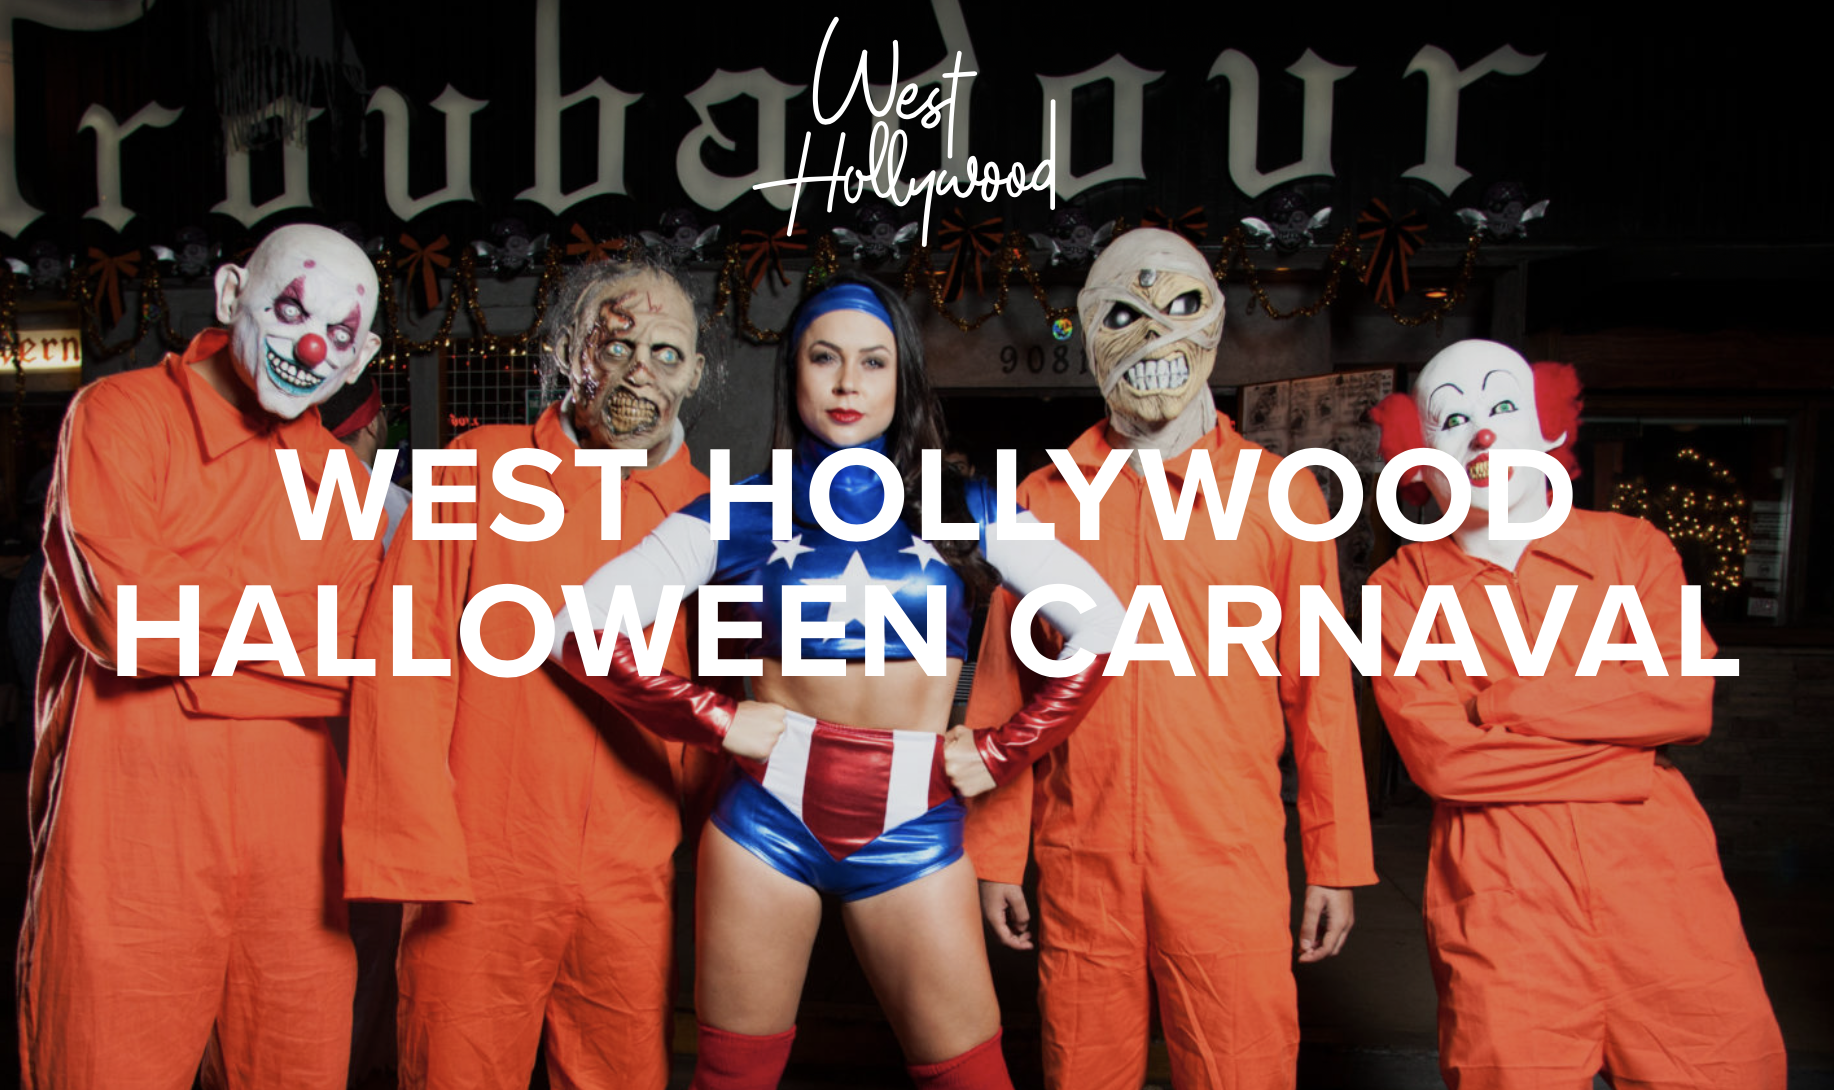 the west hollywood halloween carnaval 2018 takes place october 31st